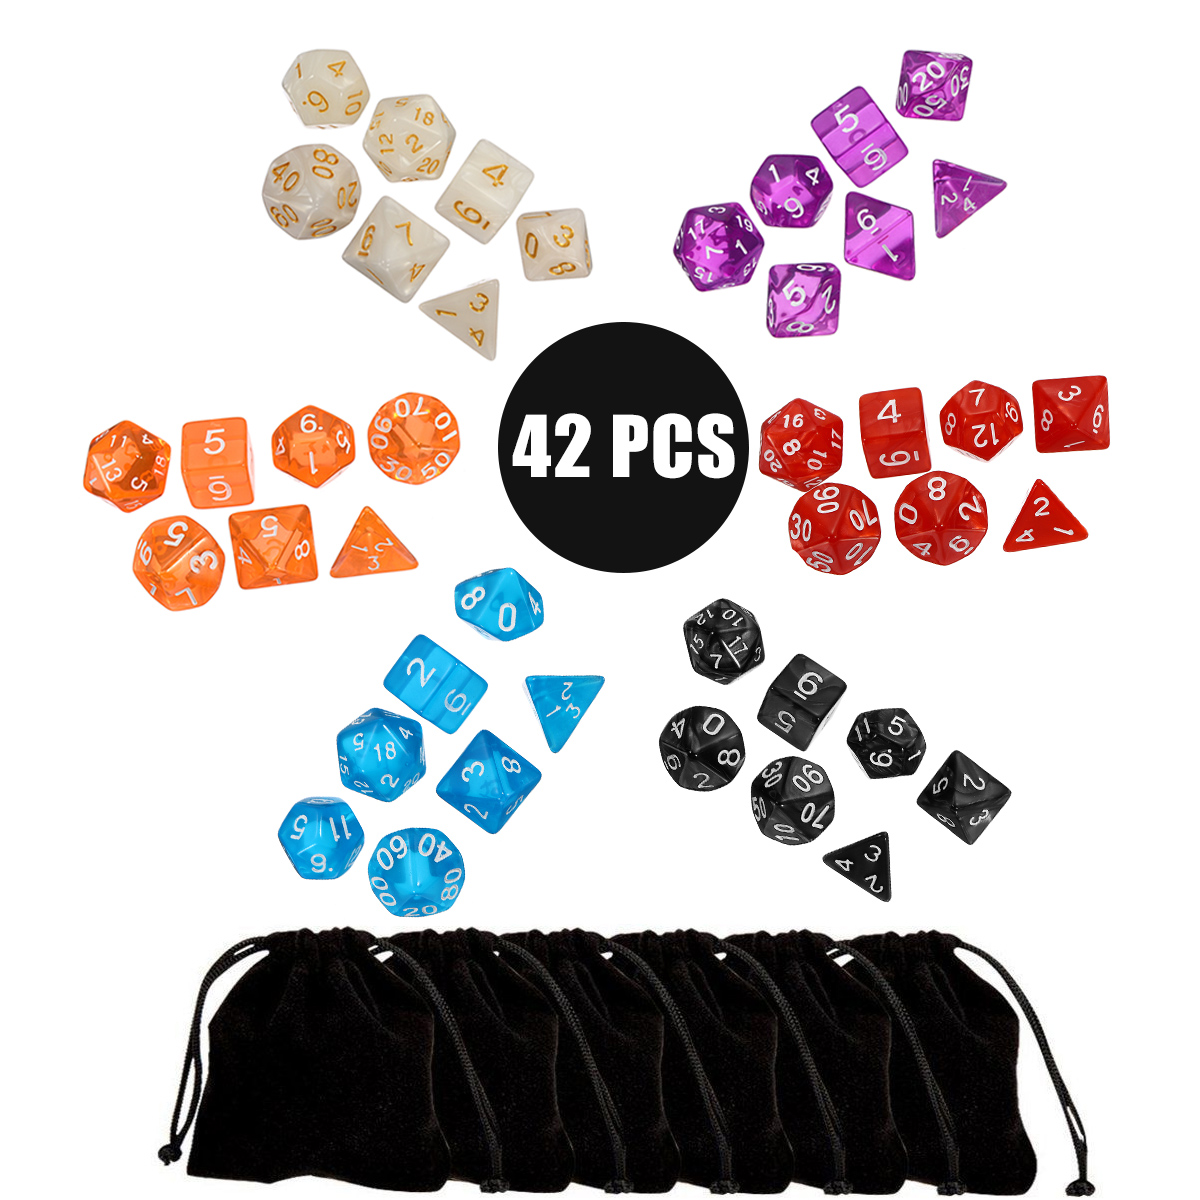 42Pcs Multi Sided Acrylic Polyhedral Dice Set 6 Colors Role Playing Game Patry Gadget with Bags